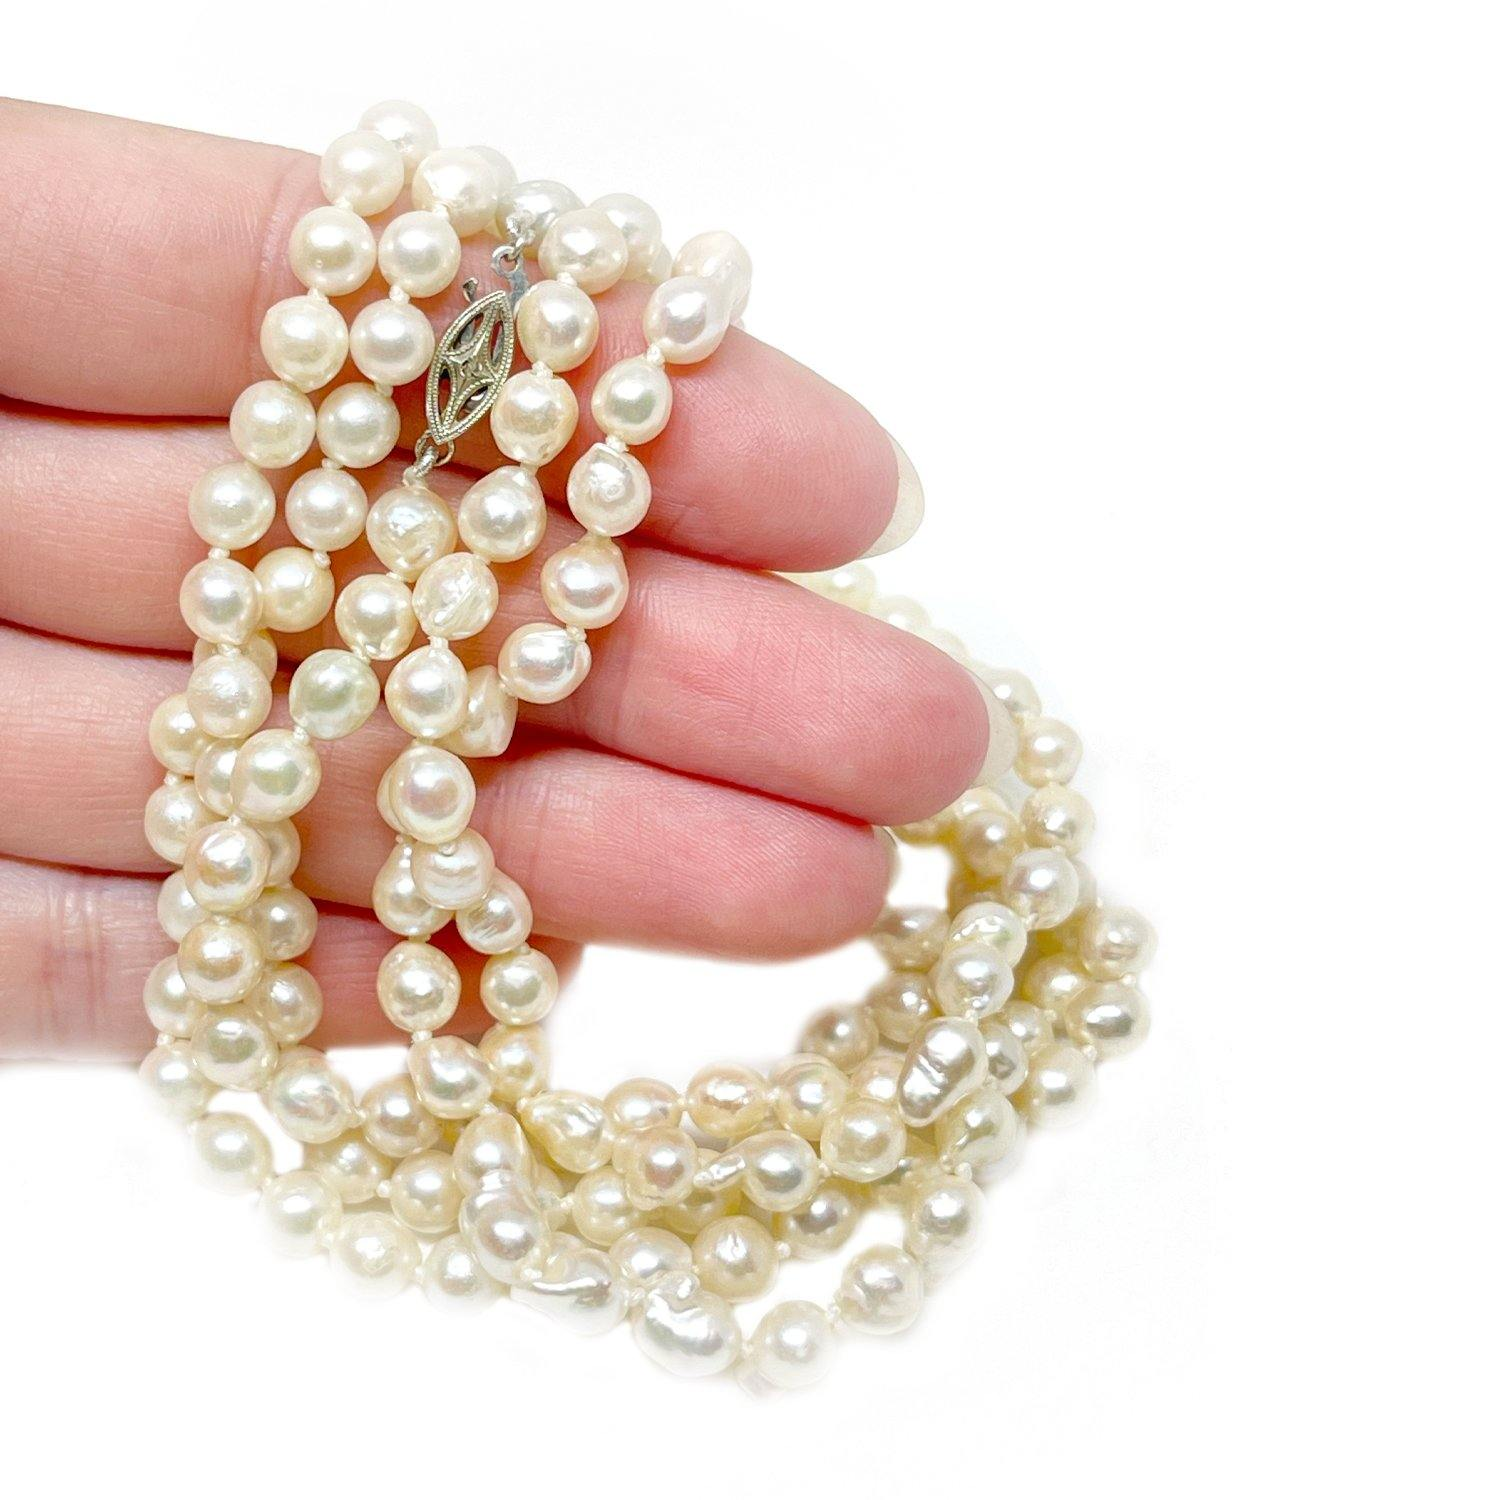 Rope Length Japanese Saltwater Cultured Akoya Pearl Strand - Diamond 14K White Gold 51 Inch